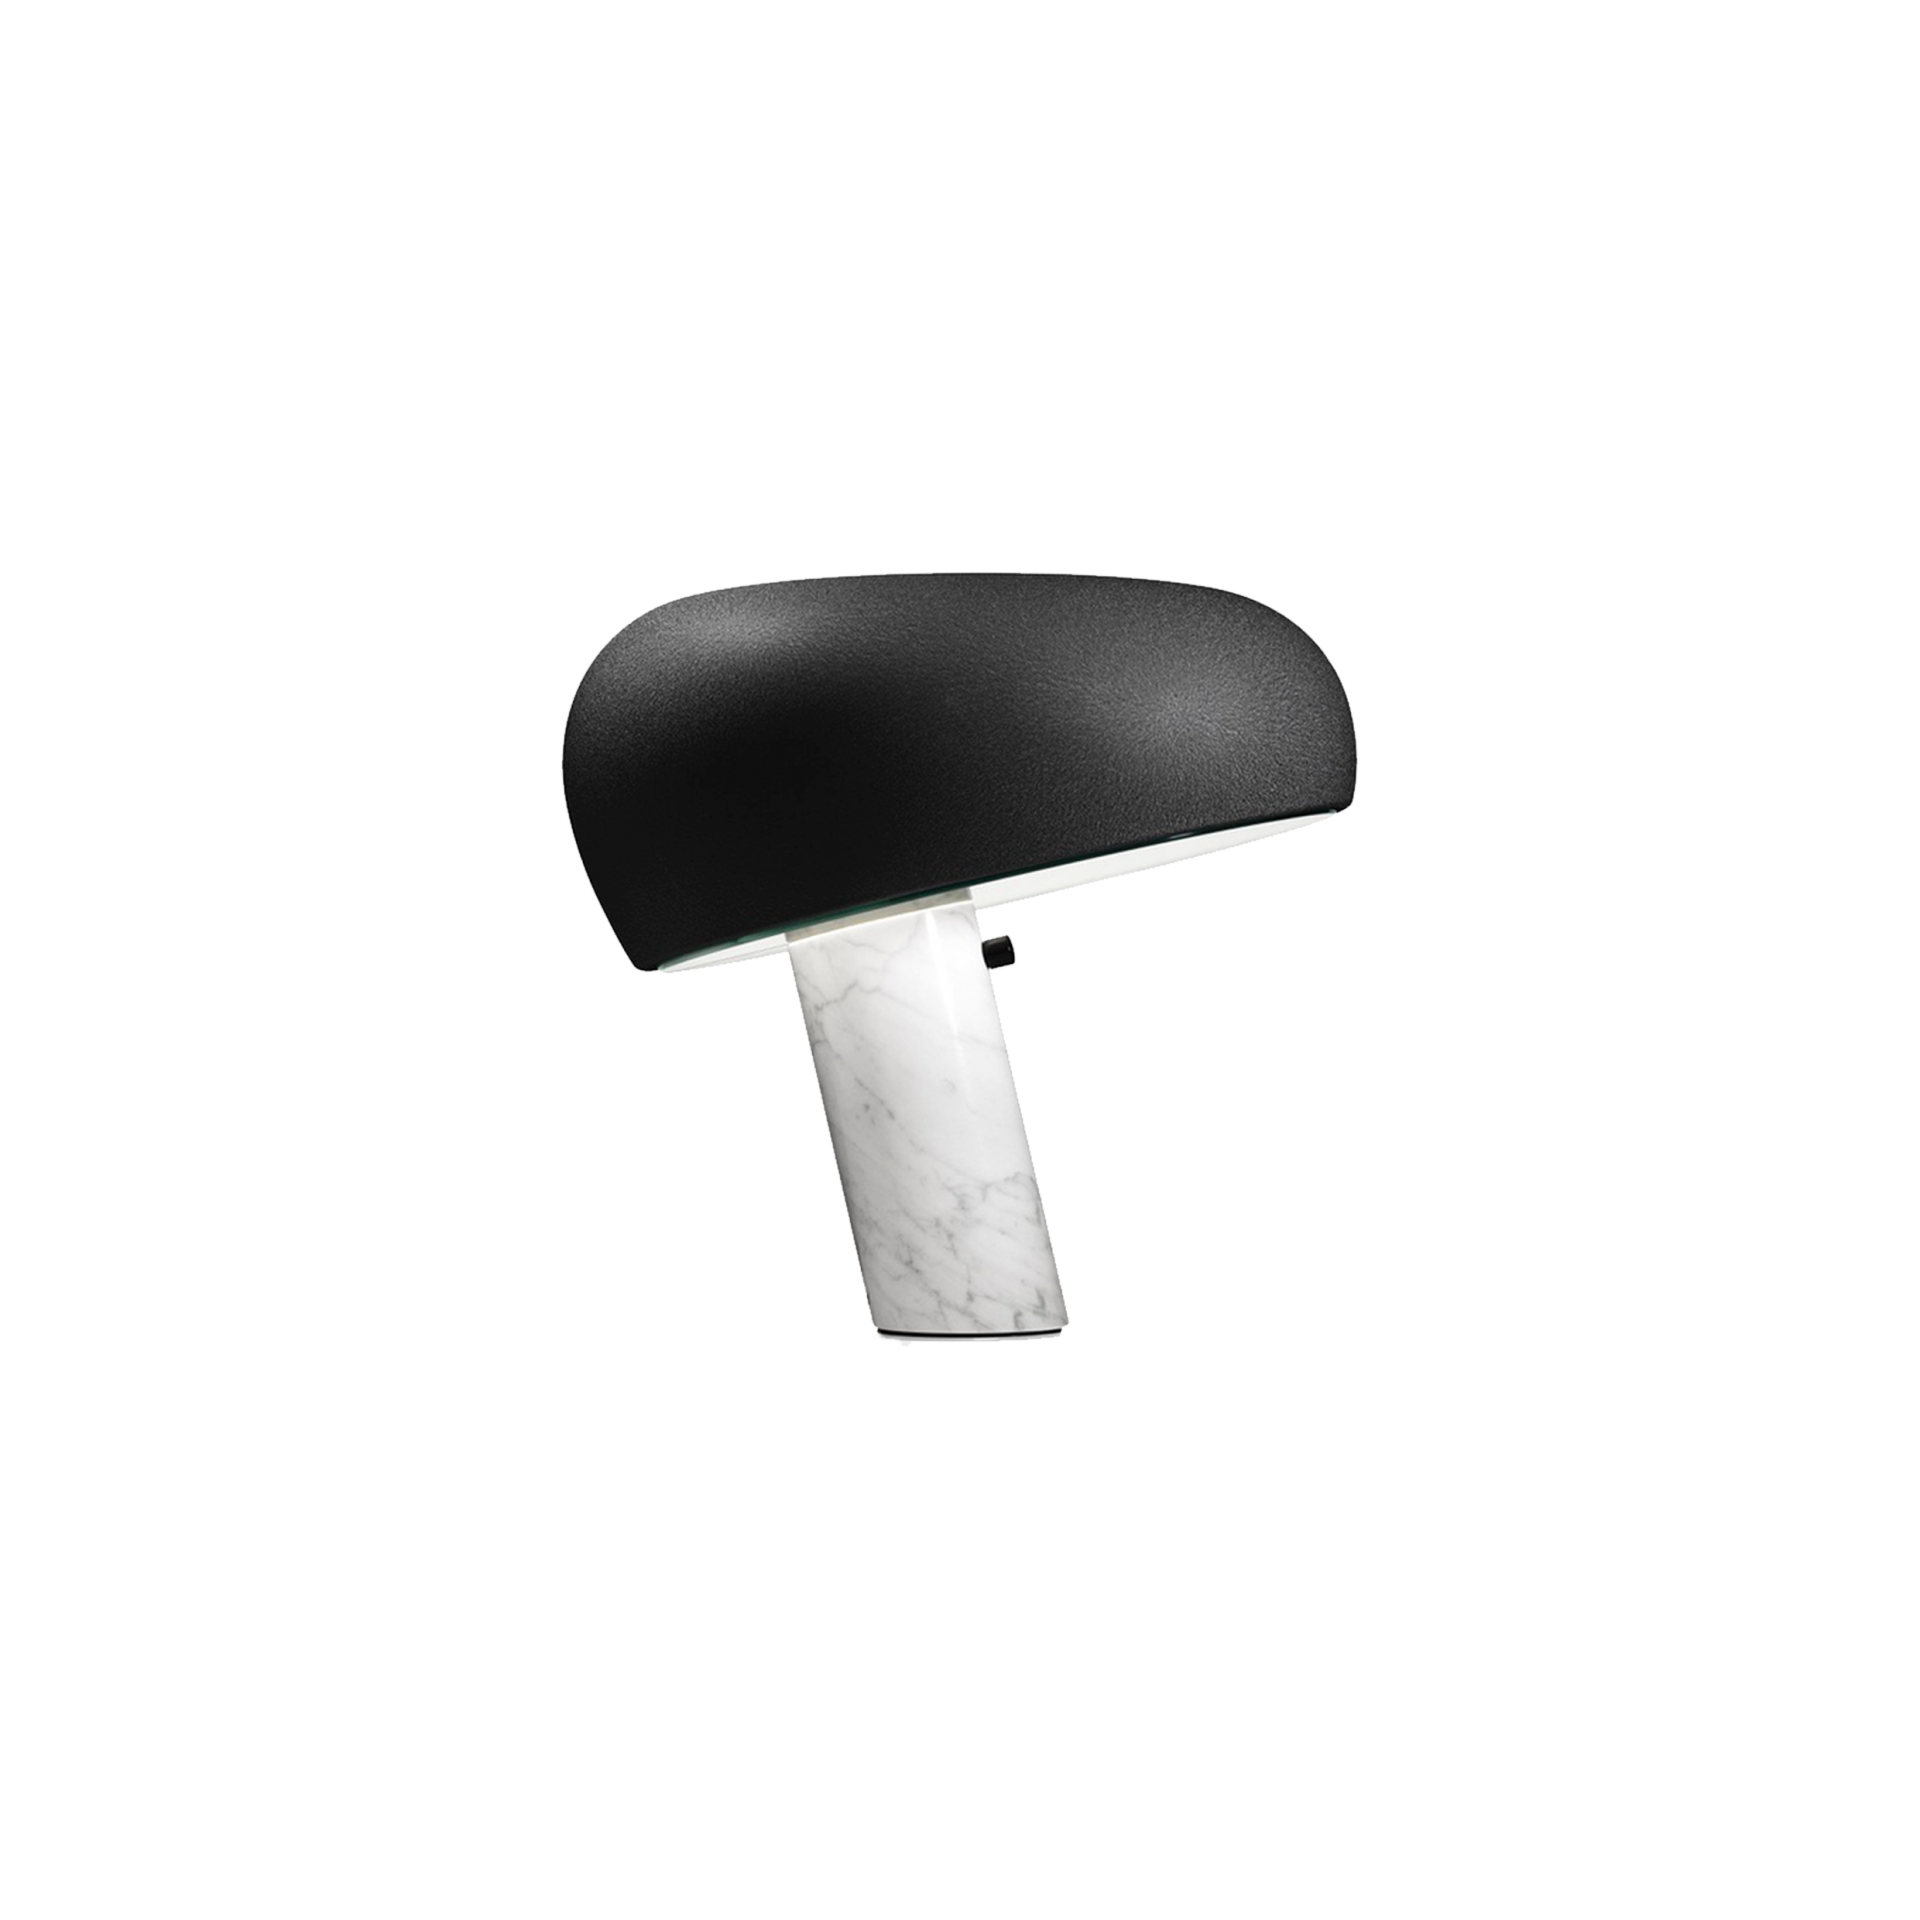 Snoopy Limited Edition - Achille and Pier Giacomo Castiglioni, 2018, Flos